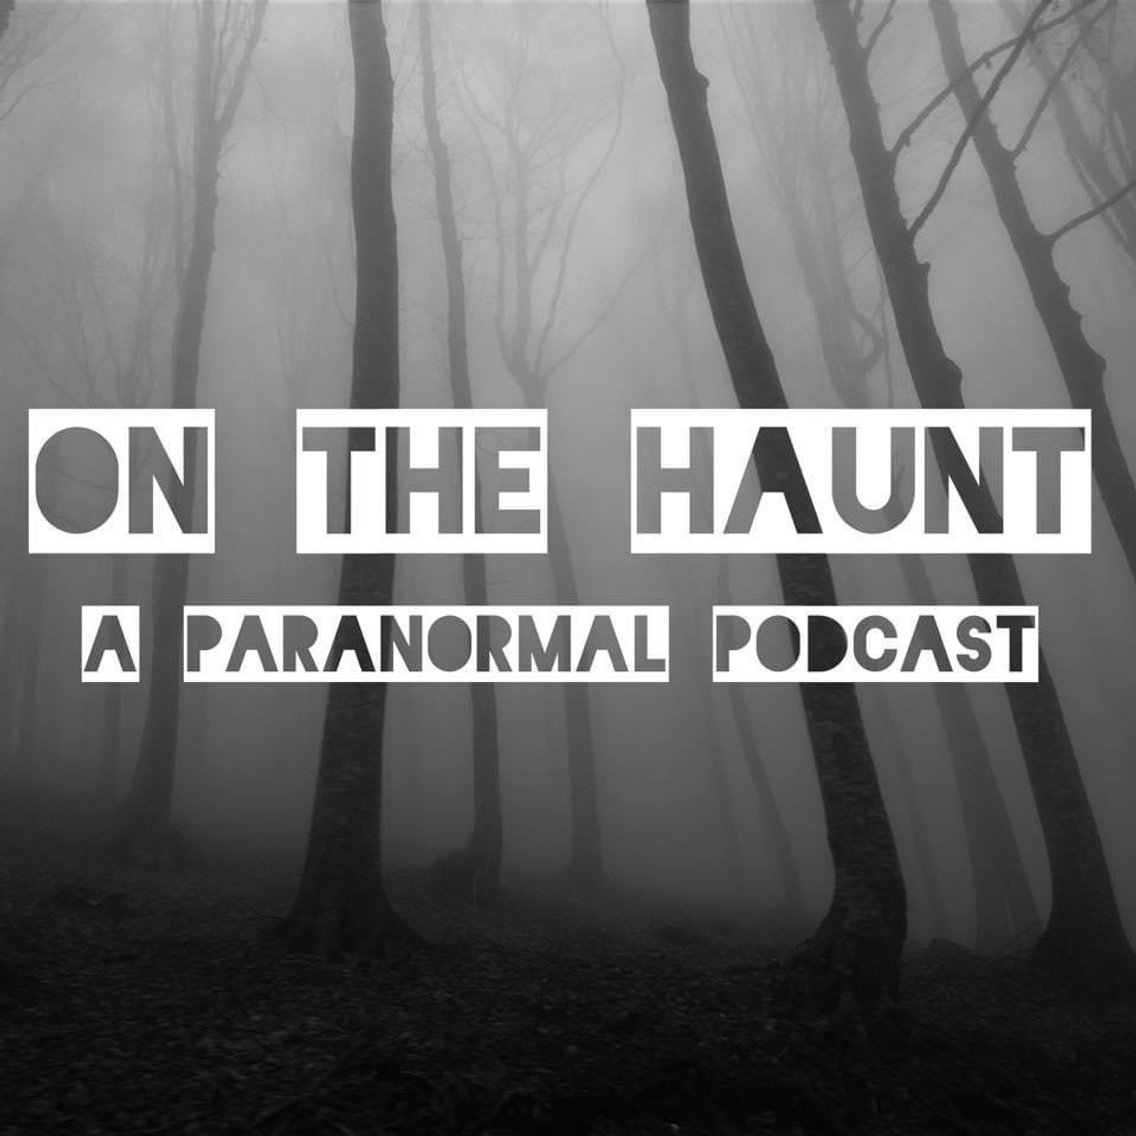 On The Haunt - A Paranormal Podcast - Cover Image